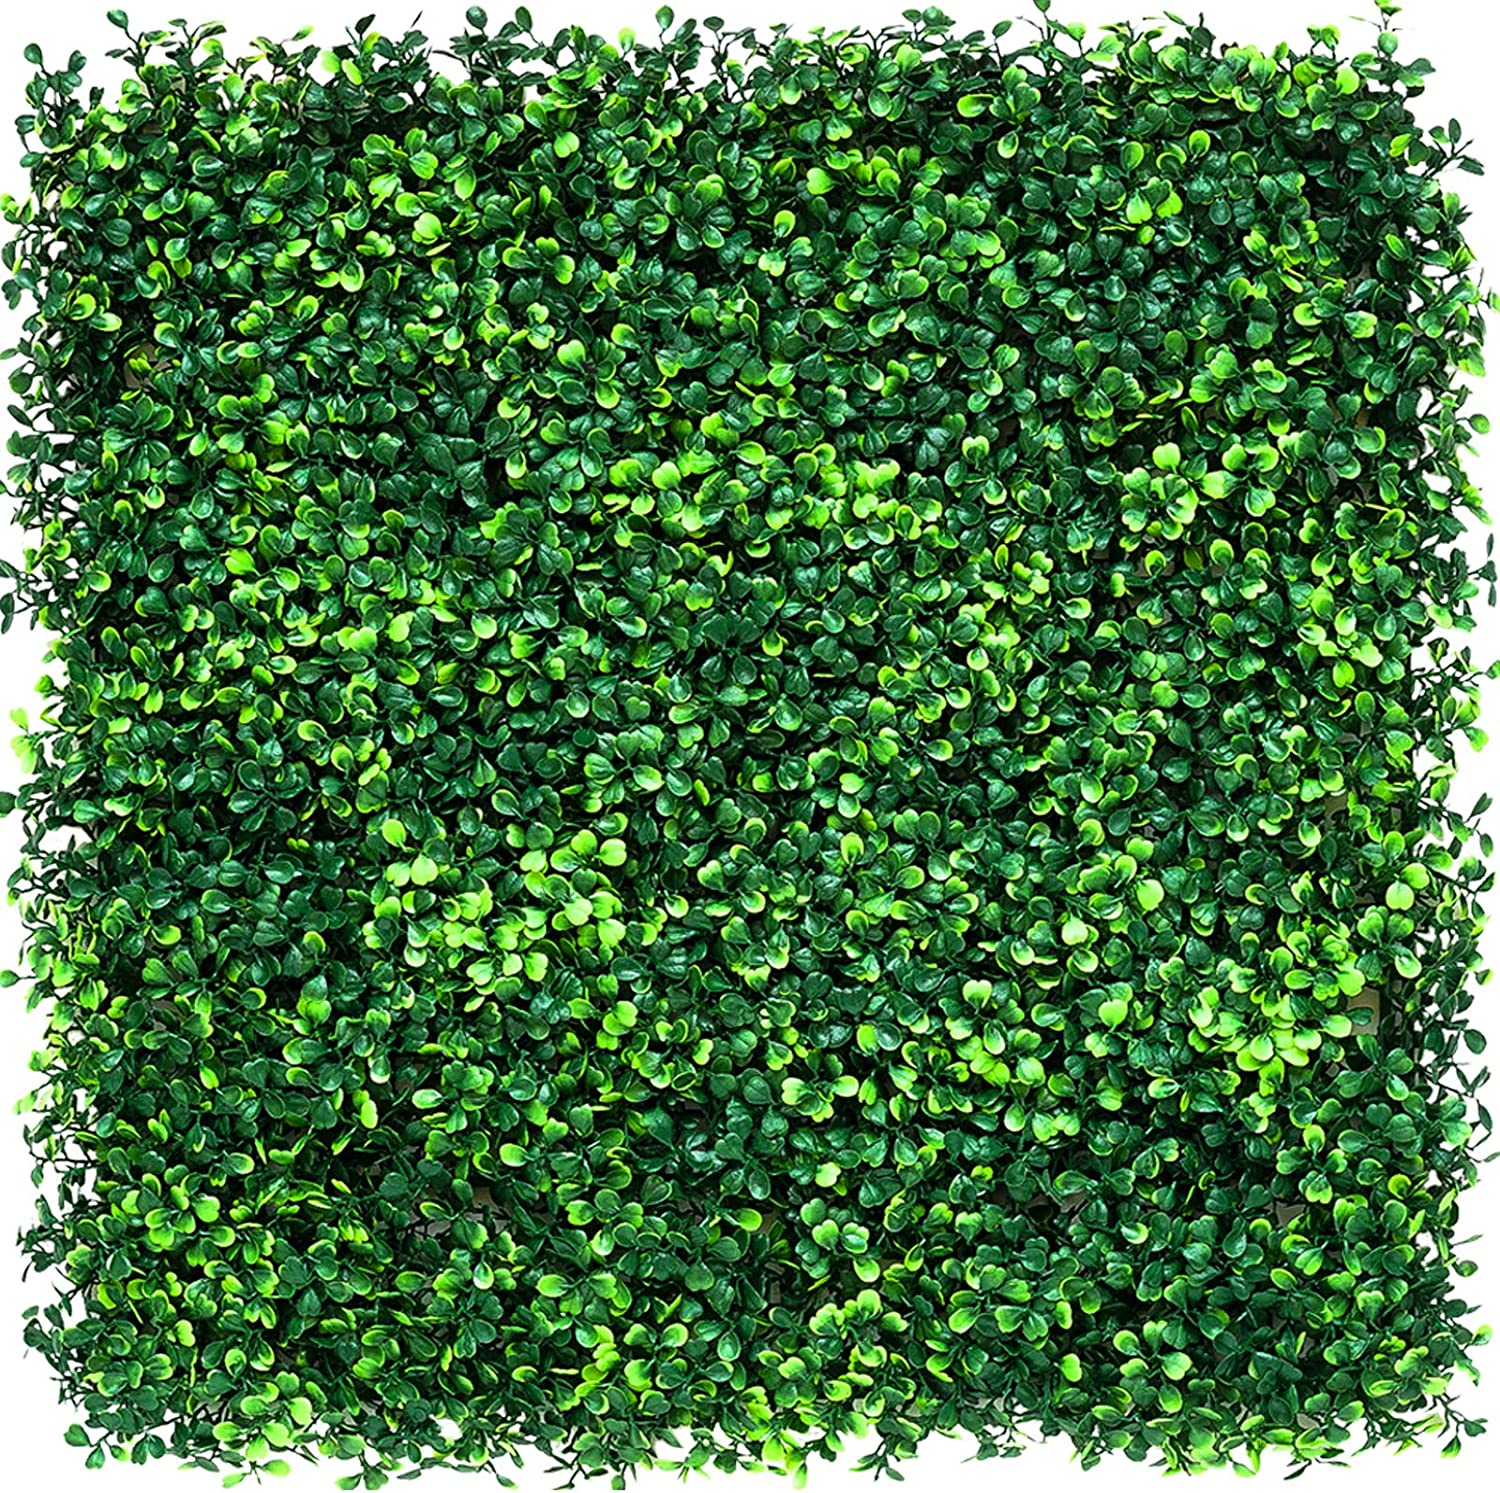 OARA 1Pcs10'x 10'Artificial Boxwood Panels Topiary Hedge Plant Privacy Hedge Screen UV Protected for Indoor Outdoor Home Backdrop Greenery Walls Decor and Backyard Garden Faux Fence Panels Decoration